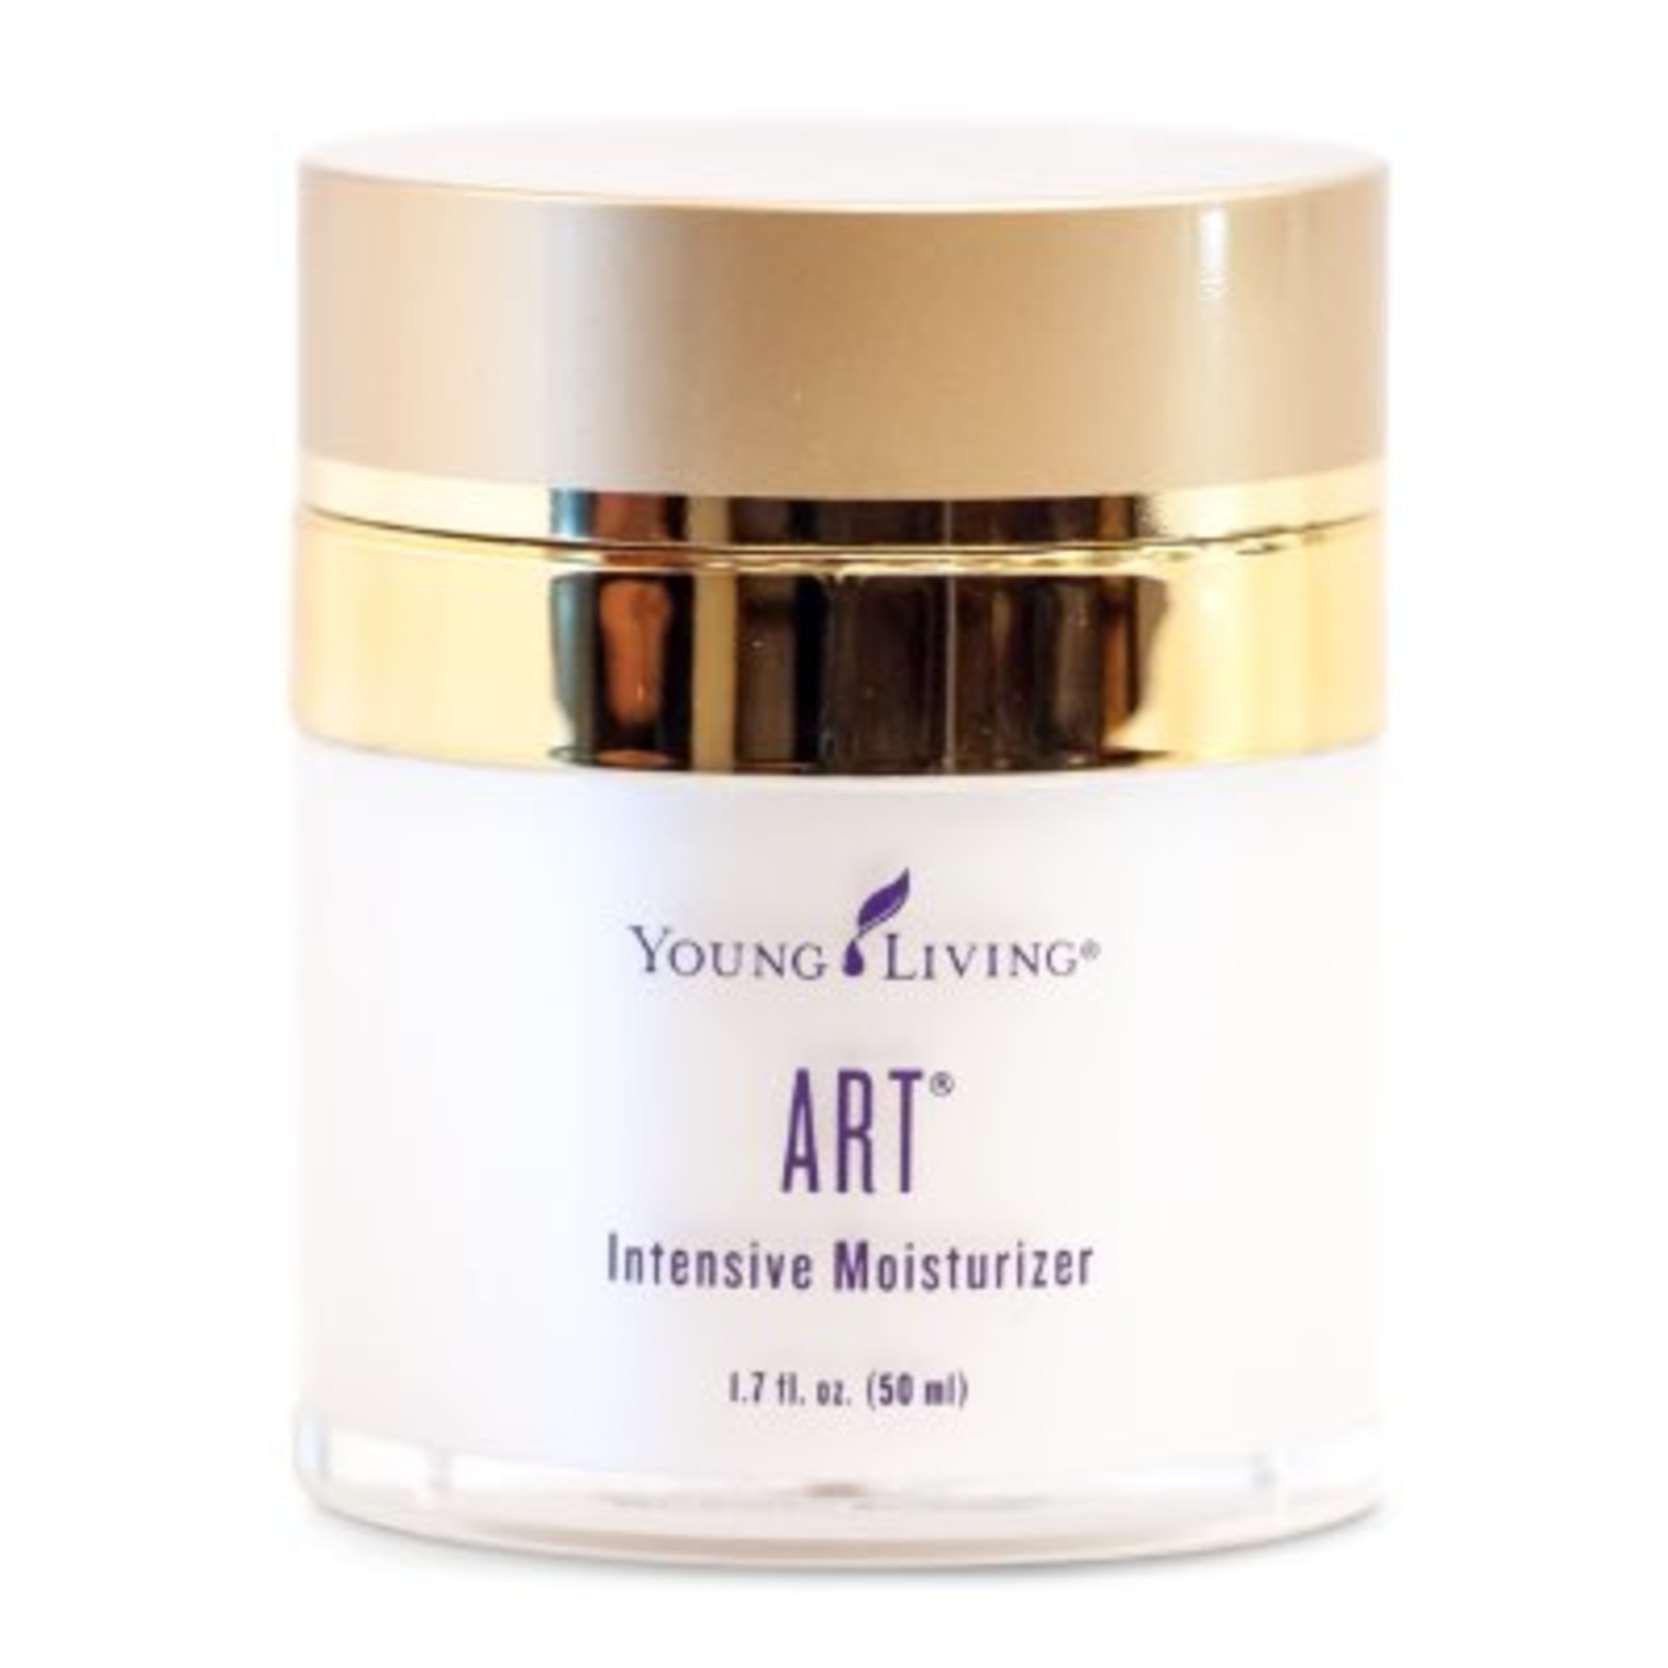 ART Intensive Moisturizer